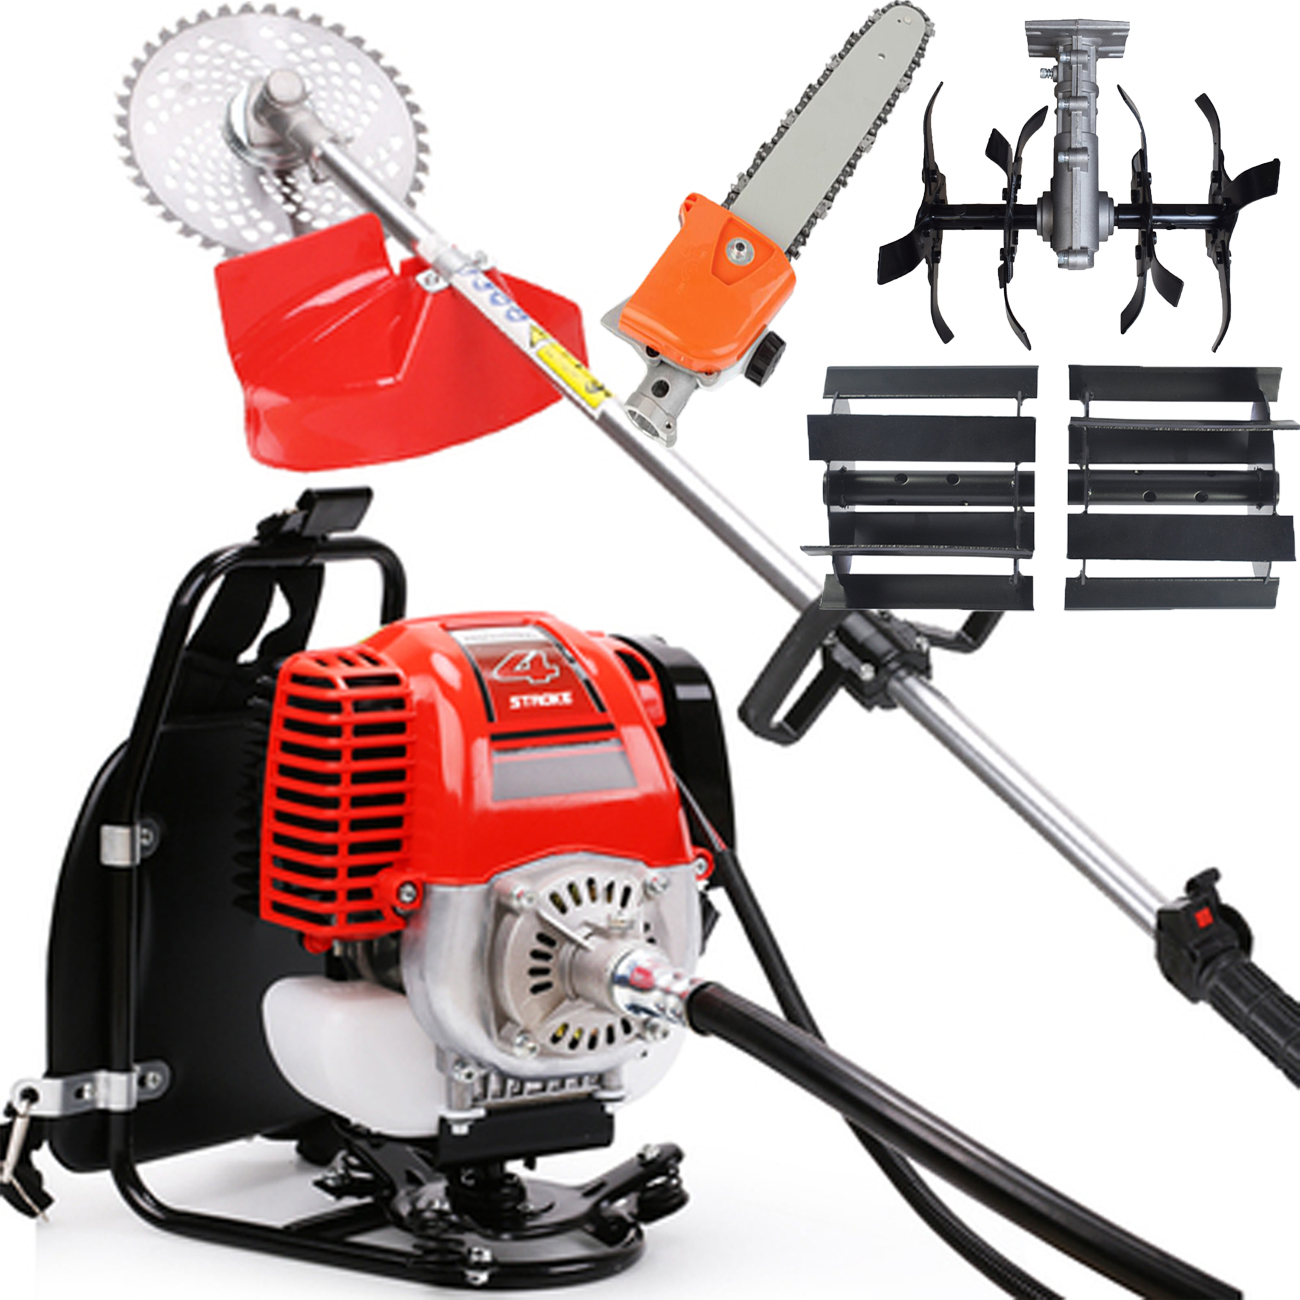 Multi function brush cutter Agricultural harvester Garden Tools Grass cutter Trimmer Mower Sawing trees weeding loosening